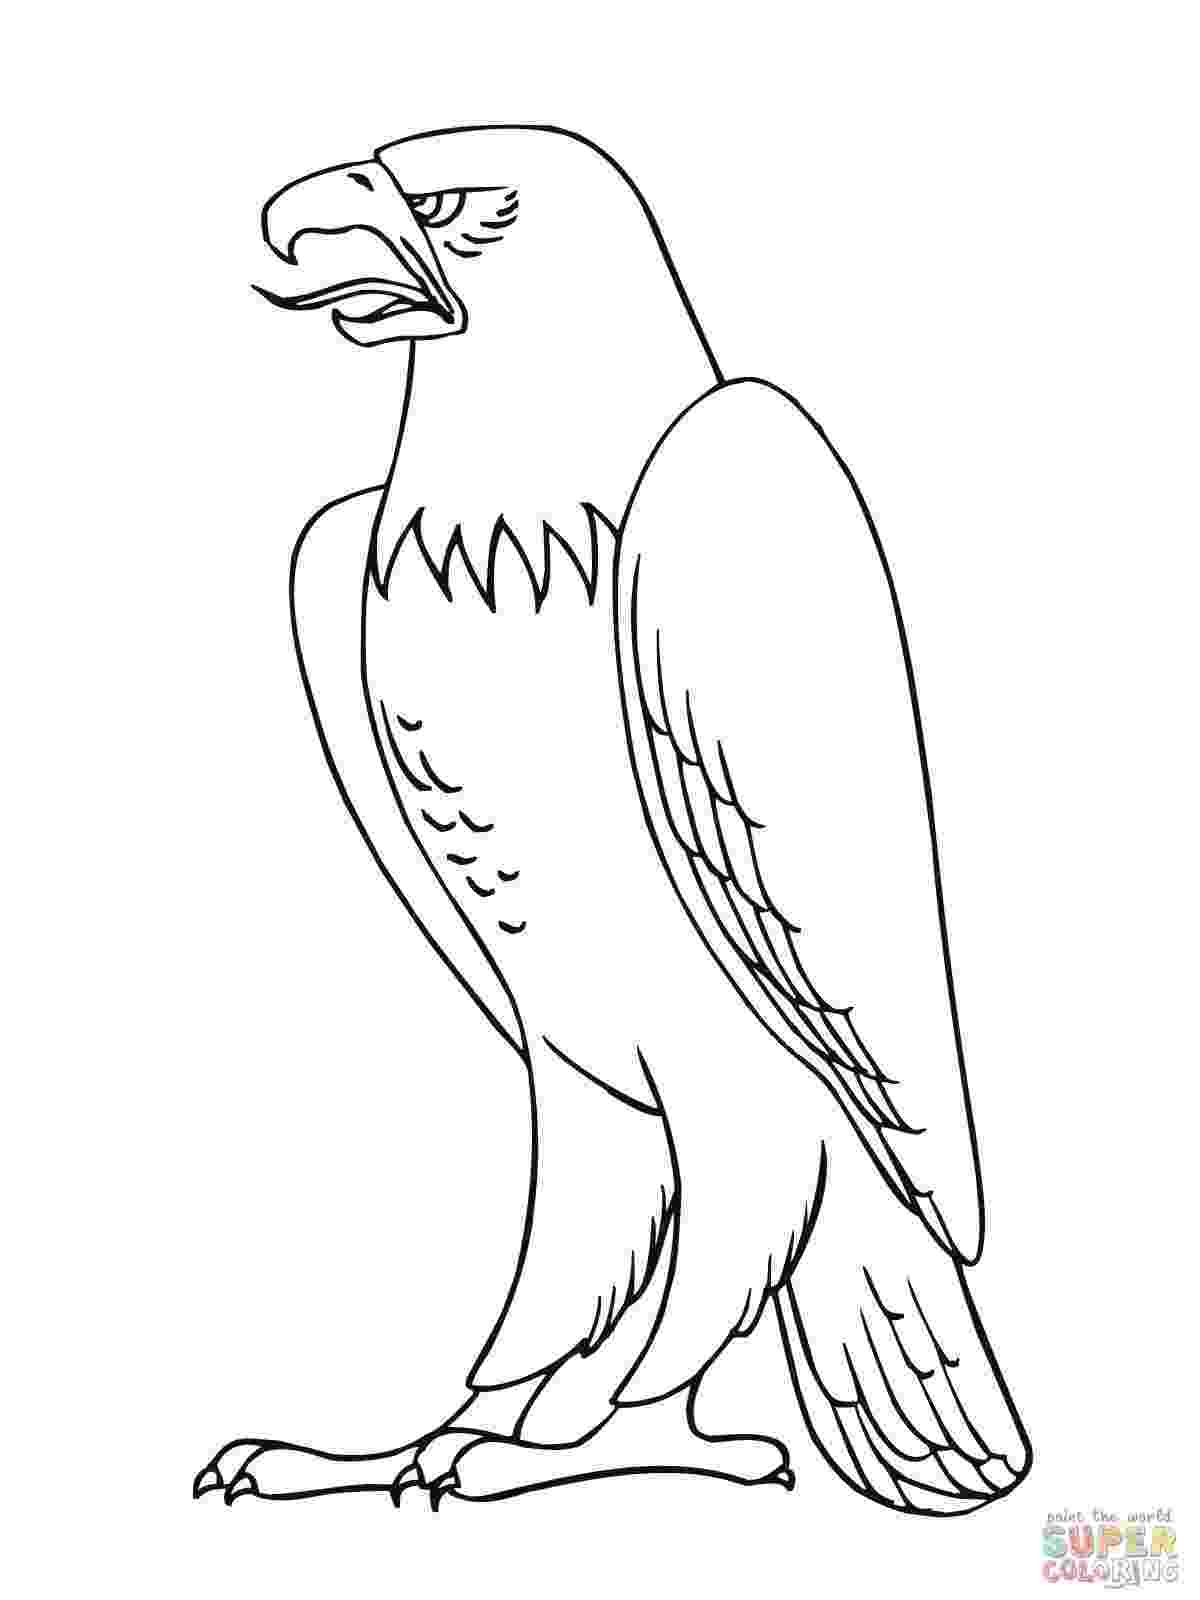 coloring eagle eagle bird coloring pages to printable coloring eagle